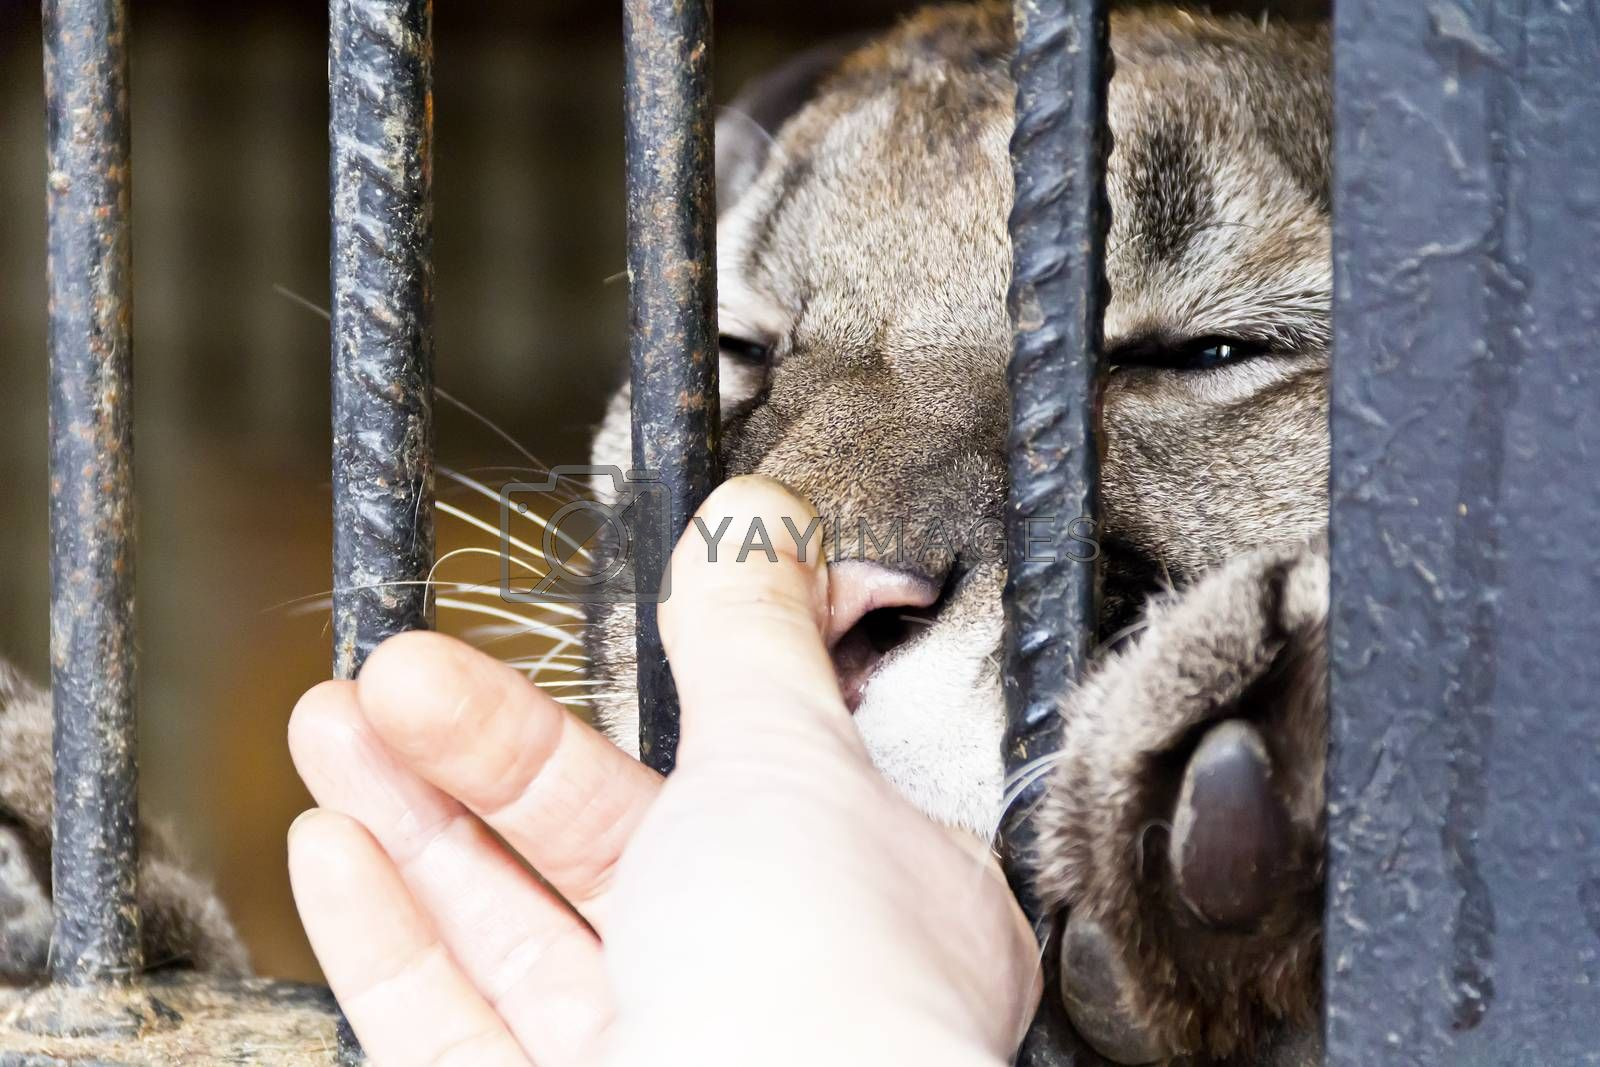 Wild cat in the zoo biting human finger